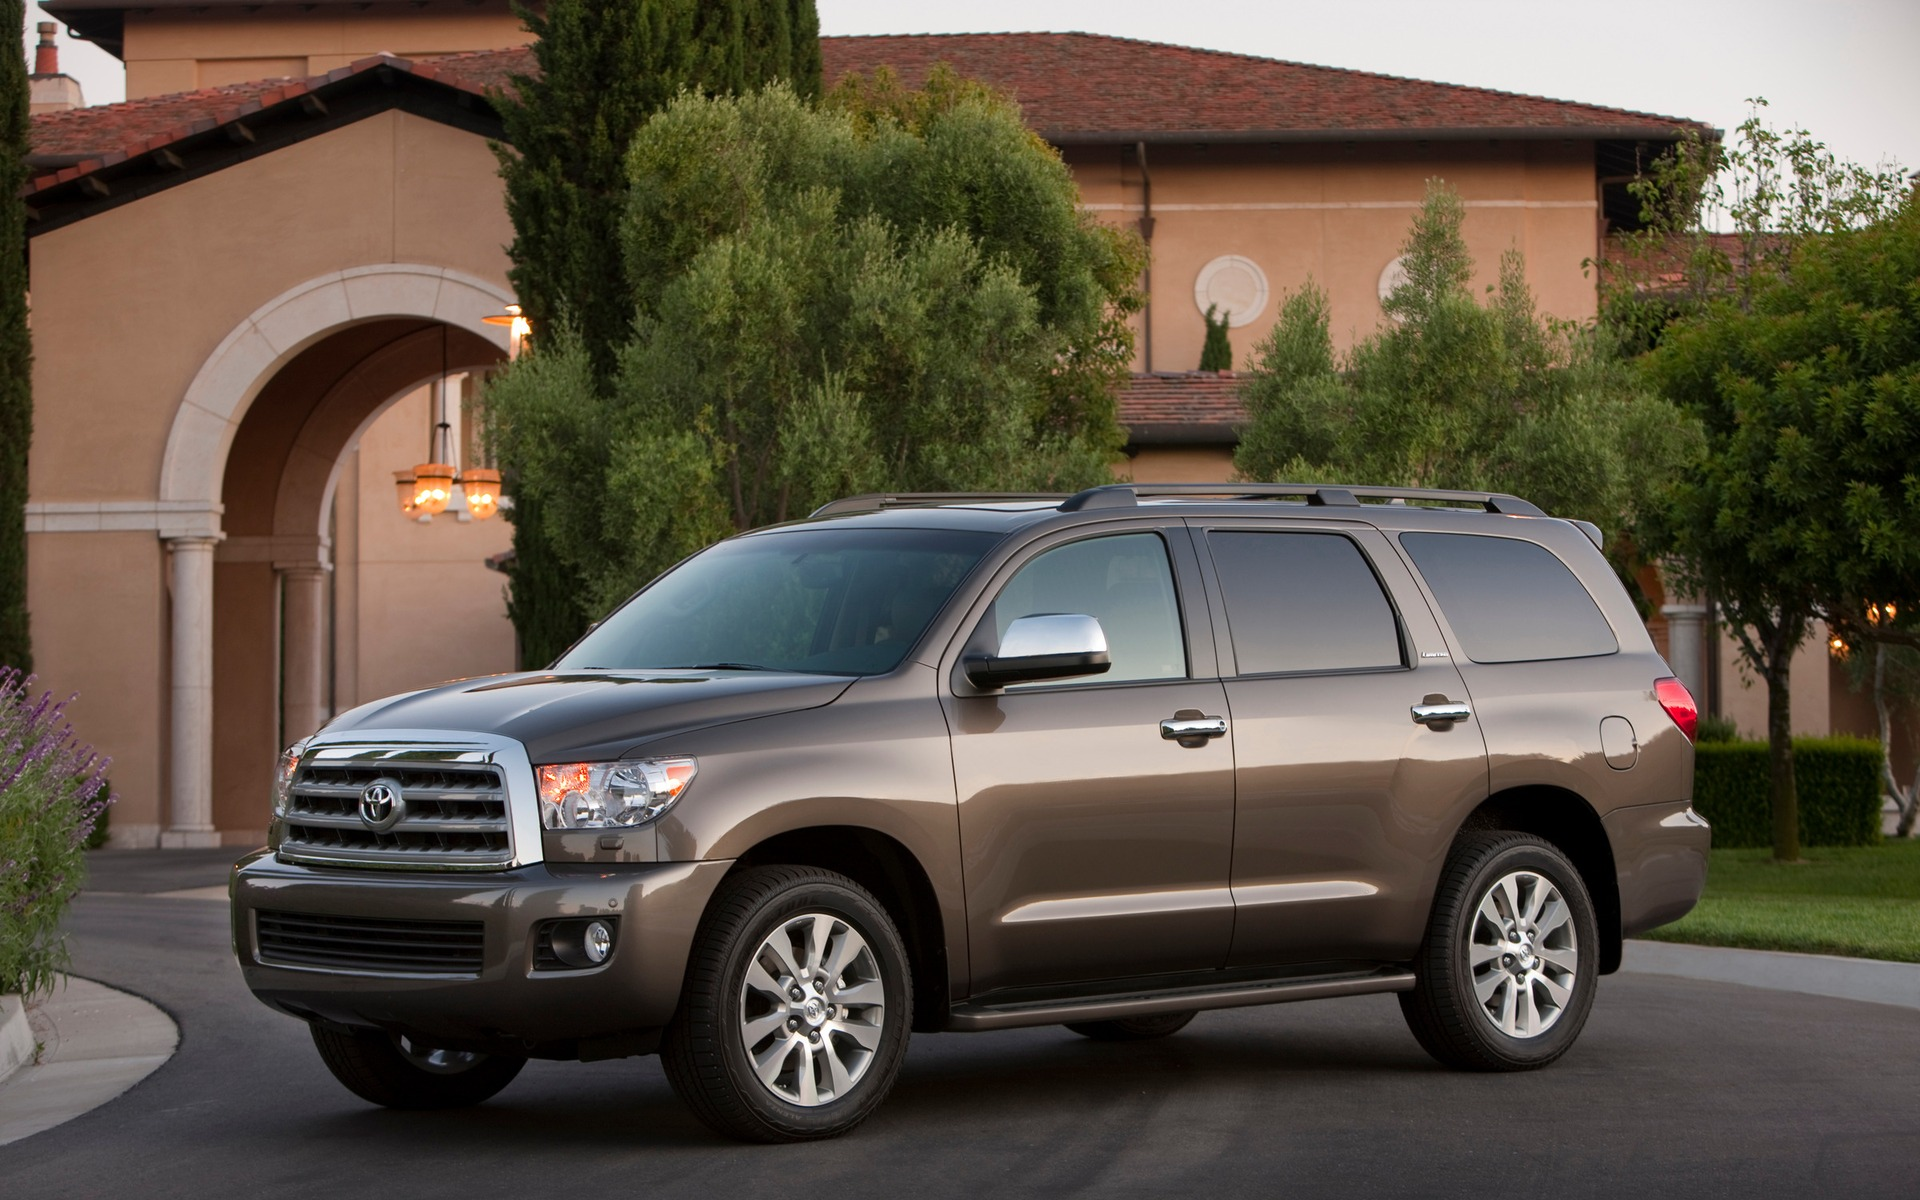 2016 toyota sequoia news reviews picture galleries and videos the car guide